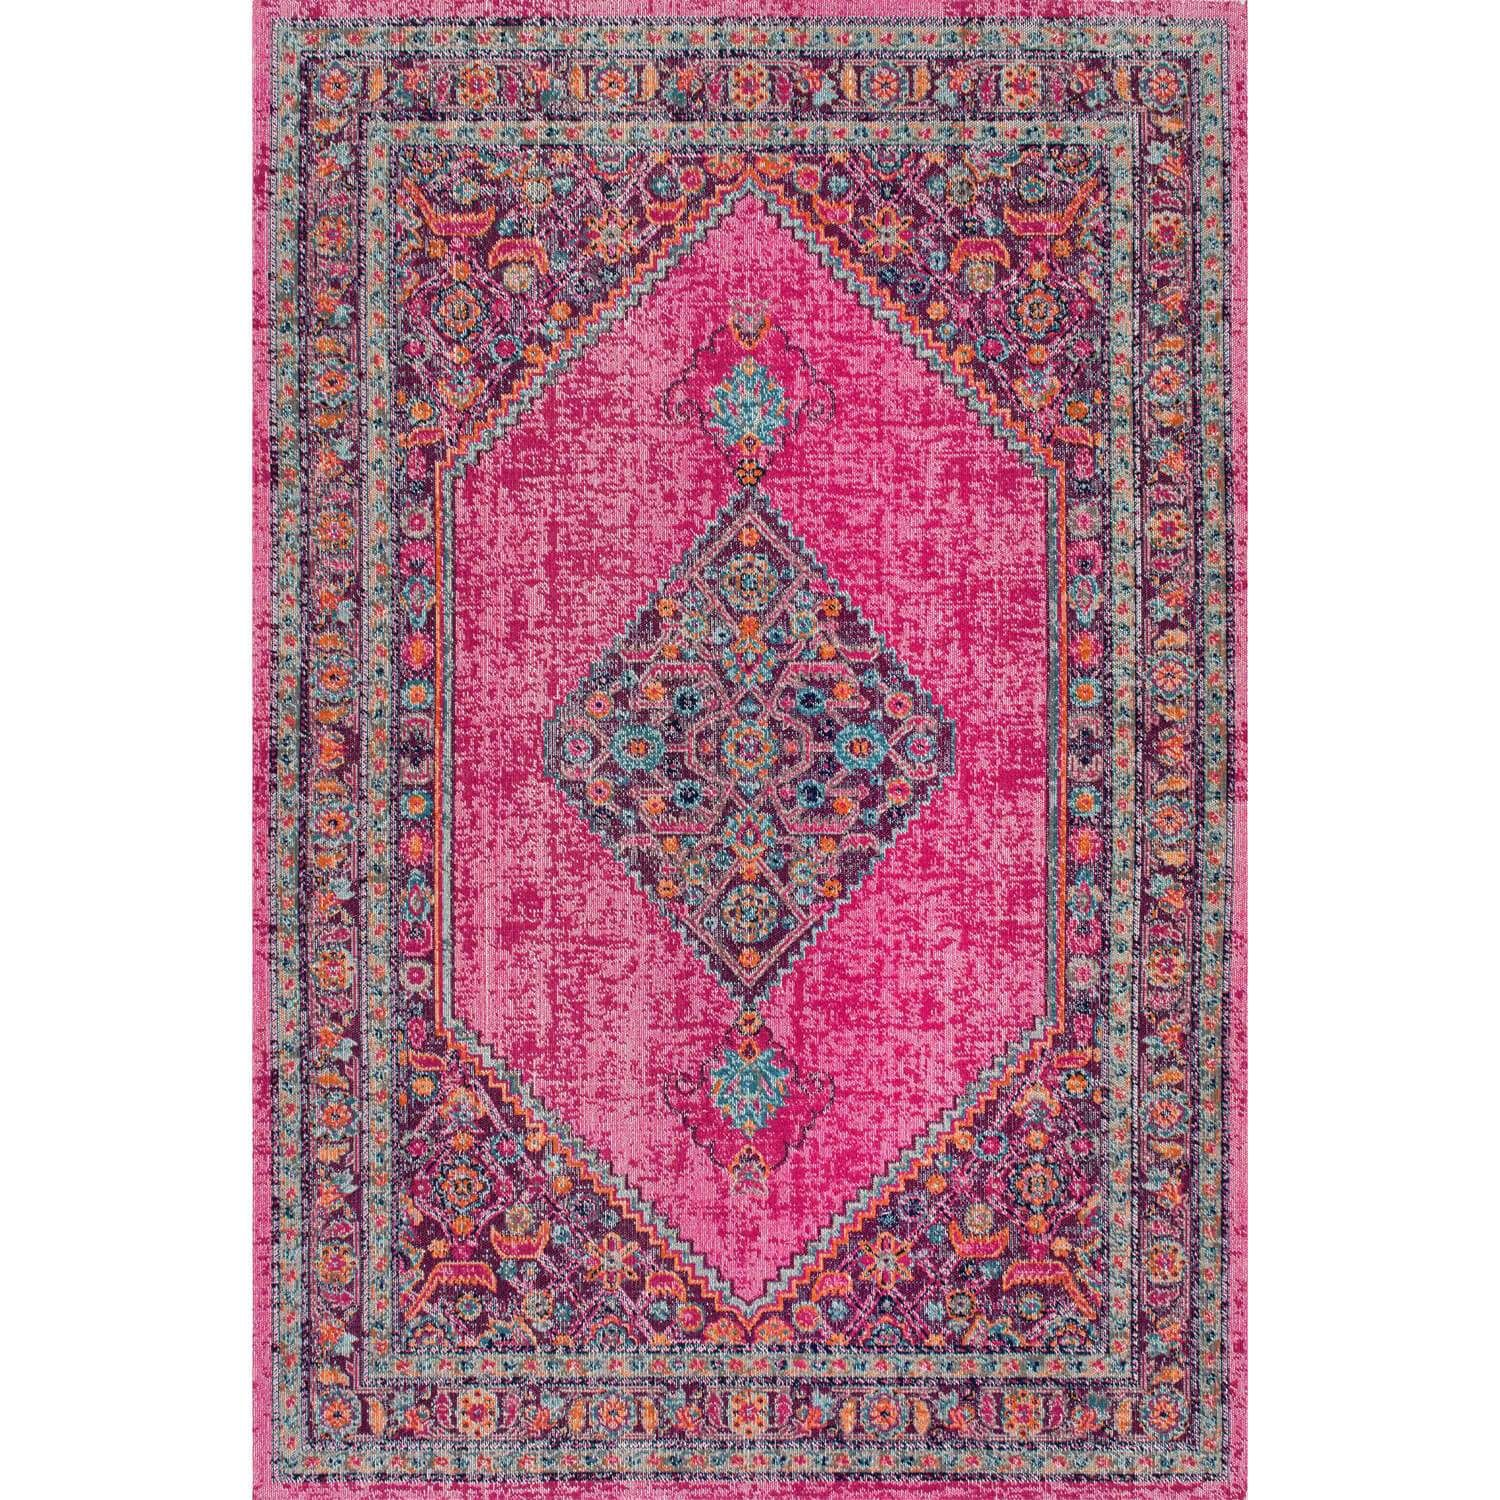 Vintage Looking Area Rugs: Vintage Style Area Rug